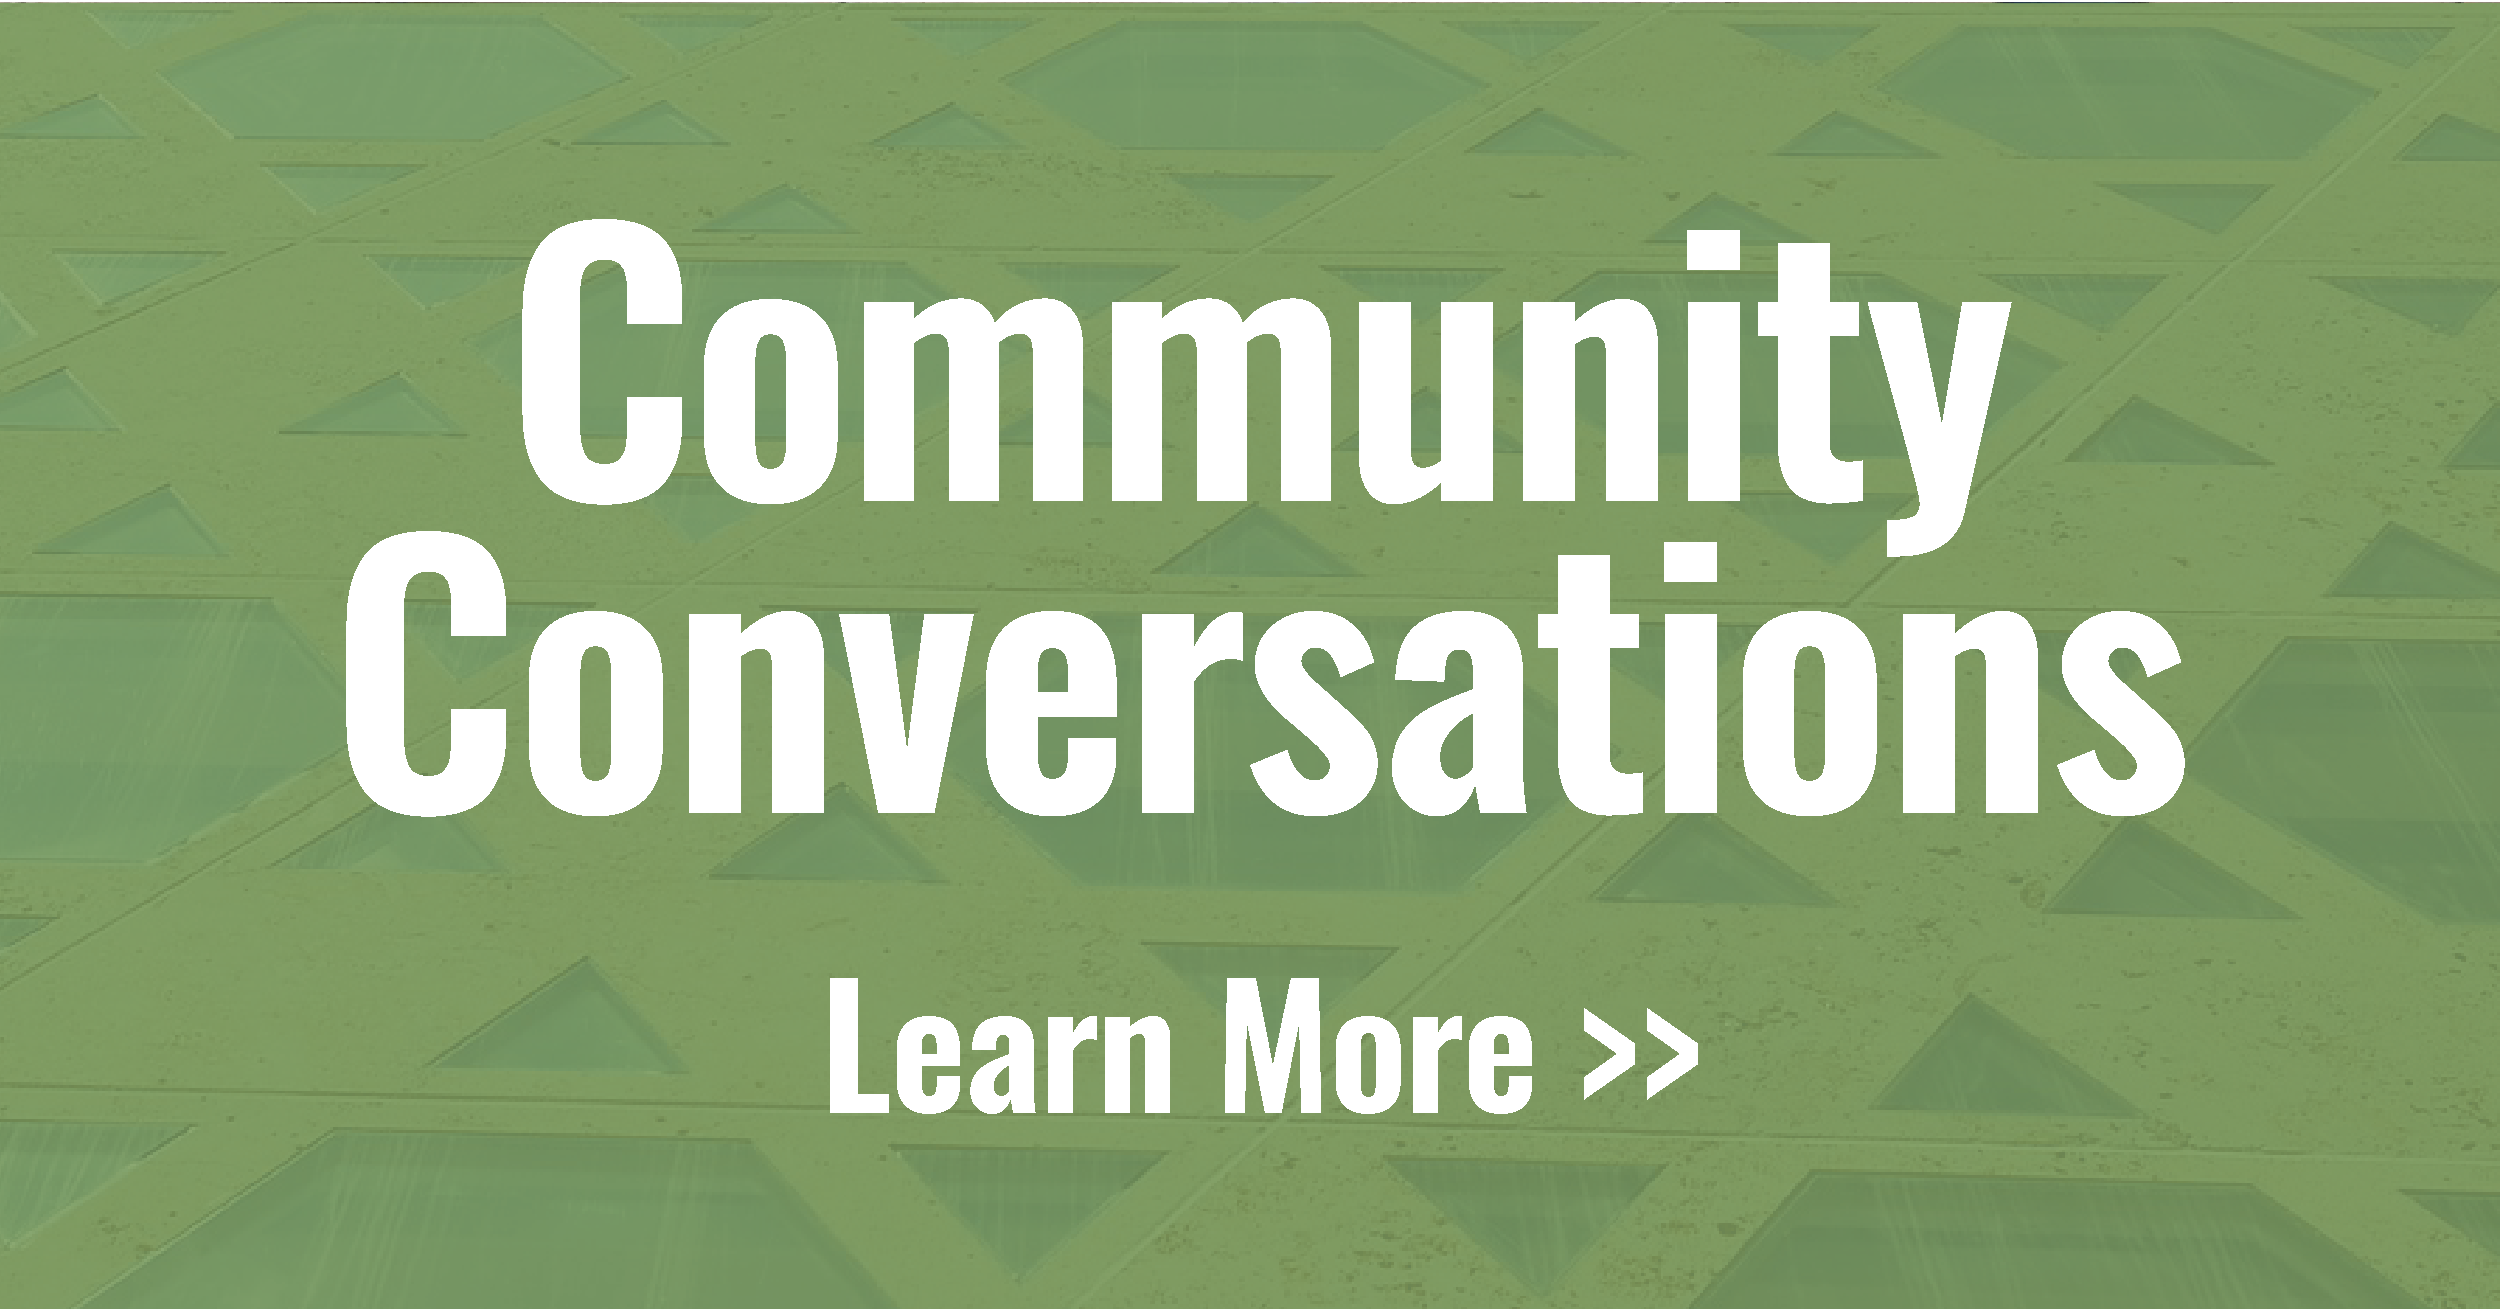 virtual links with arrows_community conversations rect